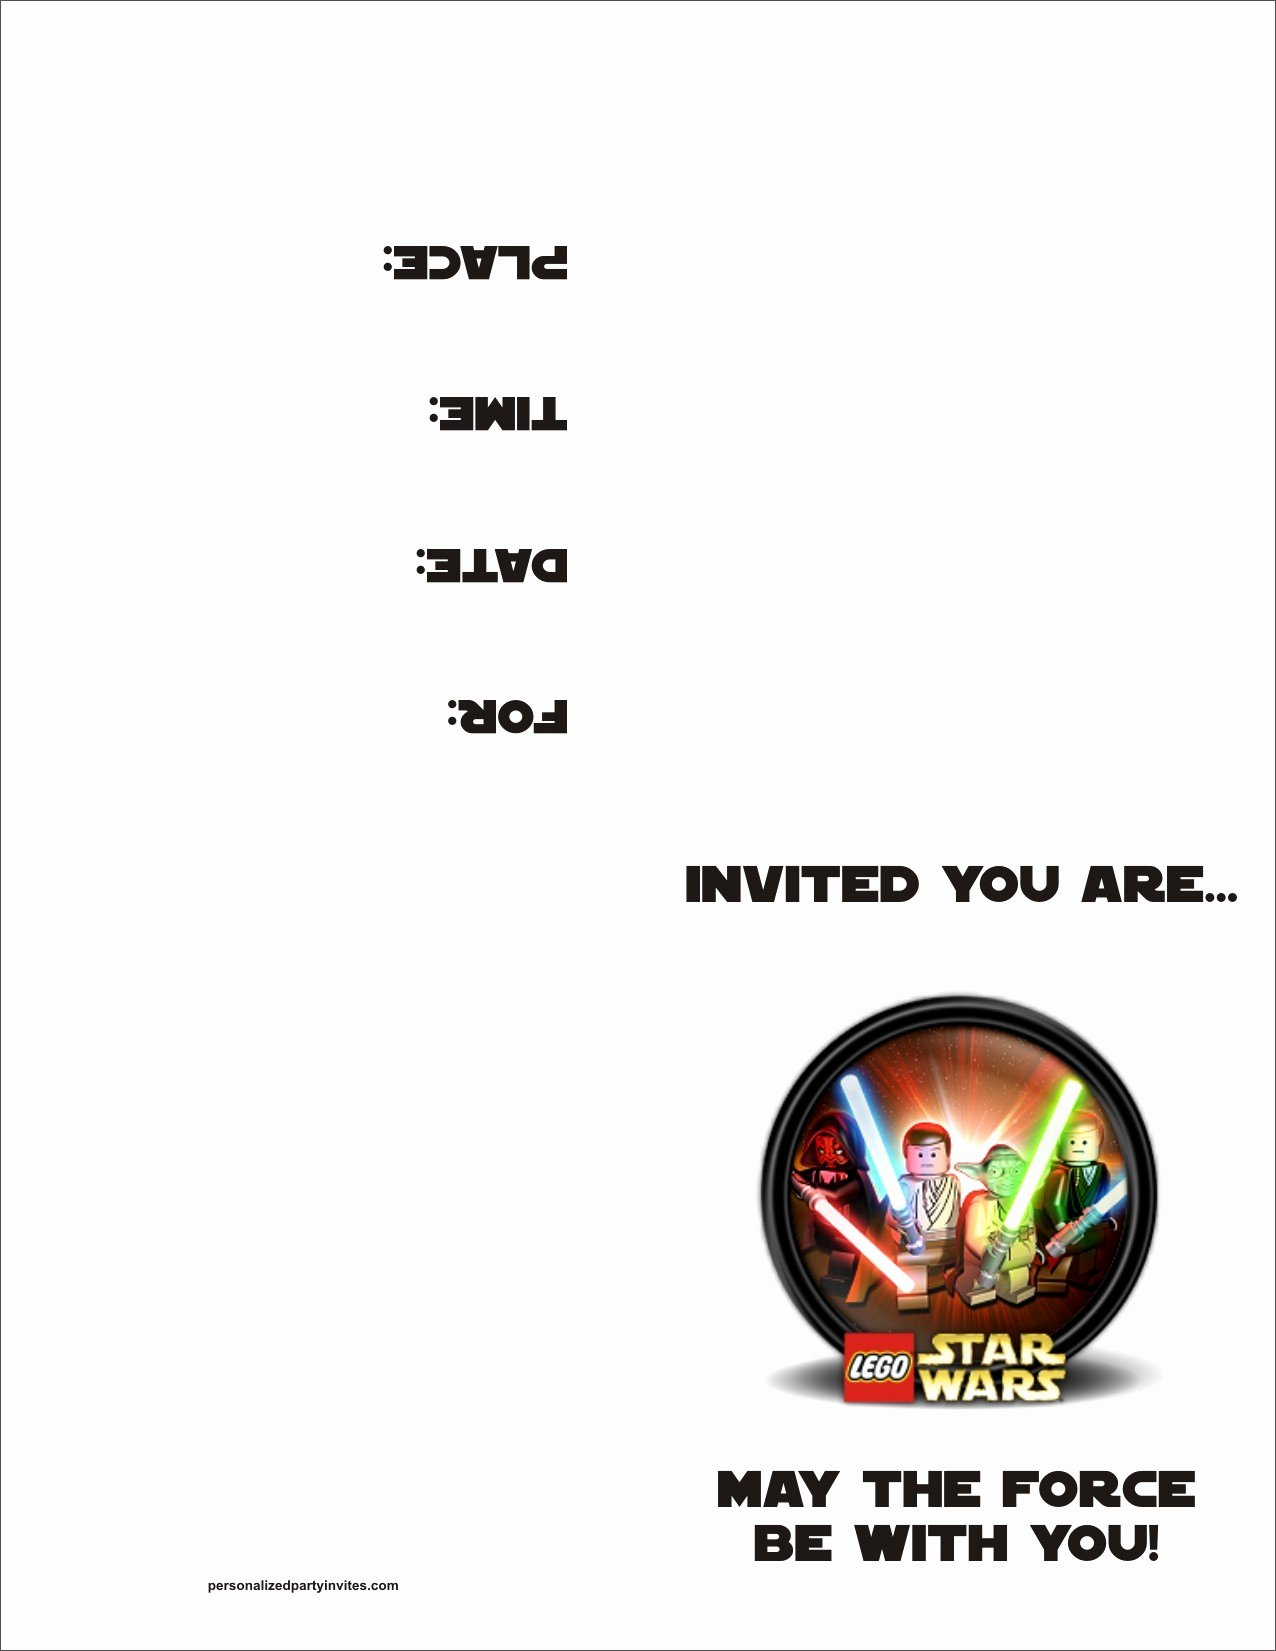 Printable Star Wars Birthday Invitations Lovely Lego Star Wars Free Printable Birthday Party Invitation Personalized Party Invites